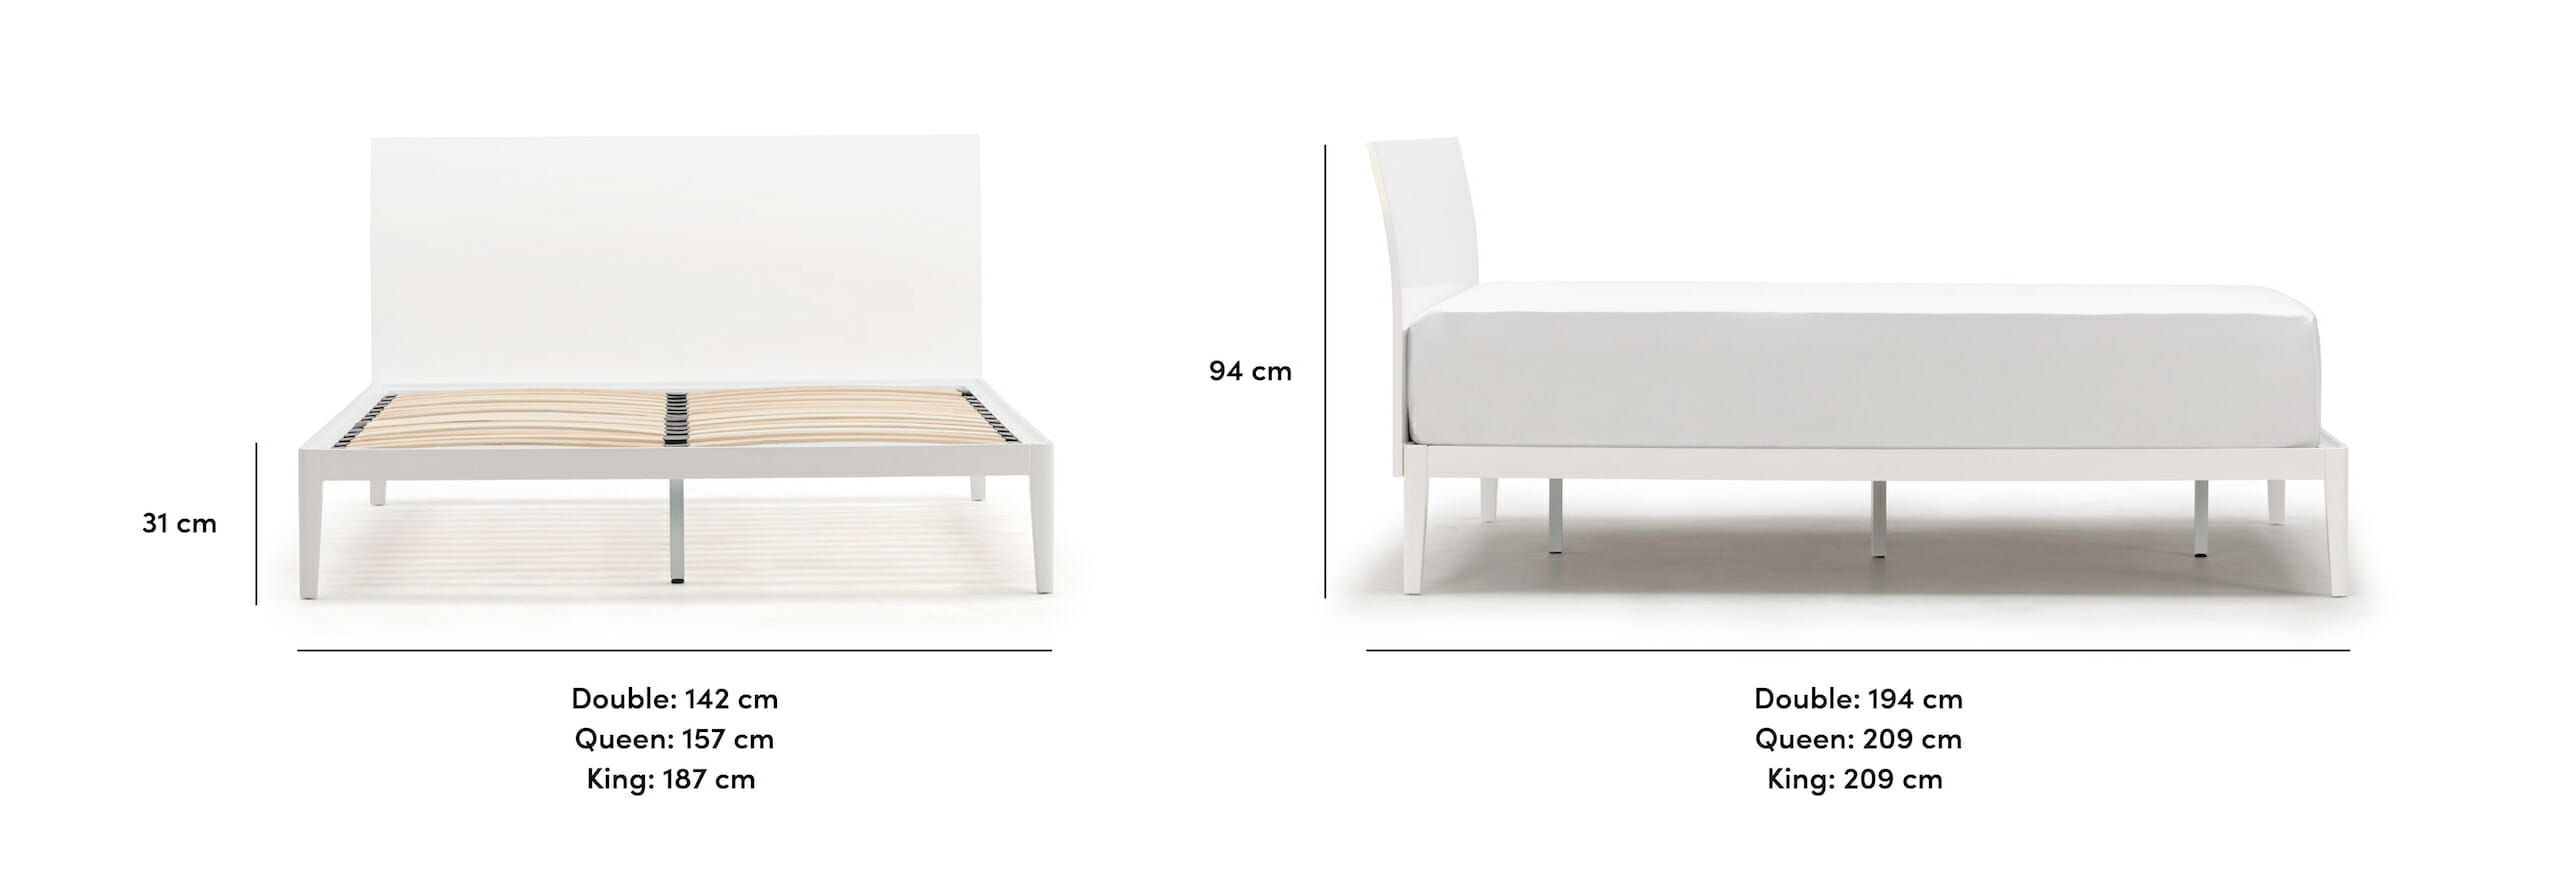 Sunrise bed dimensions